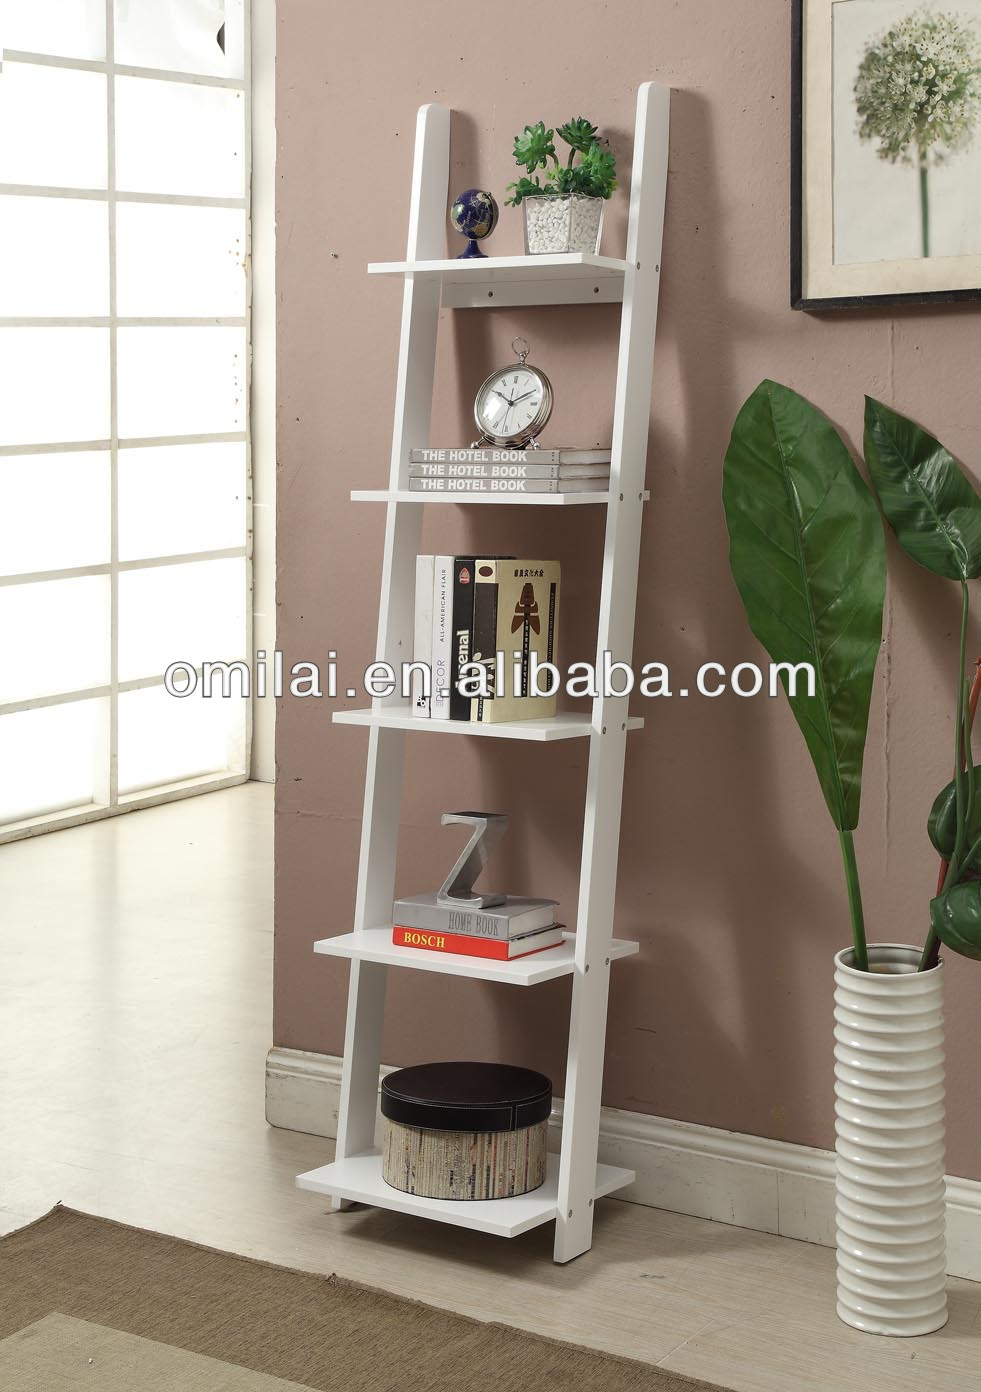 Mdf Narrow Bookshelf Decorative Ladders In Living Room   Buy Narrow  Bookshelf,Decorative Step Ladders,Decorative Ladders Wood Product On  Alibaba.com